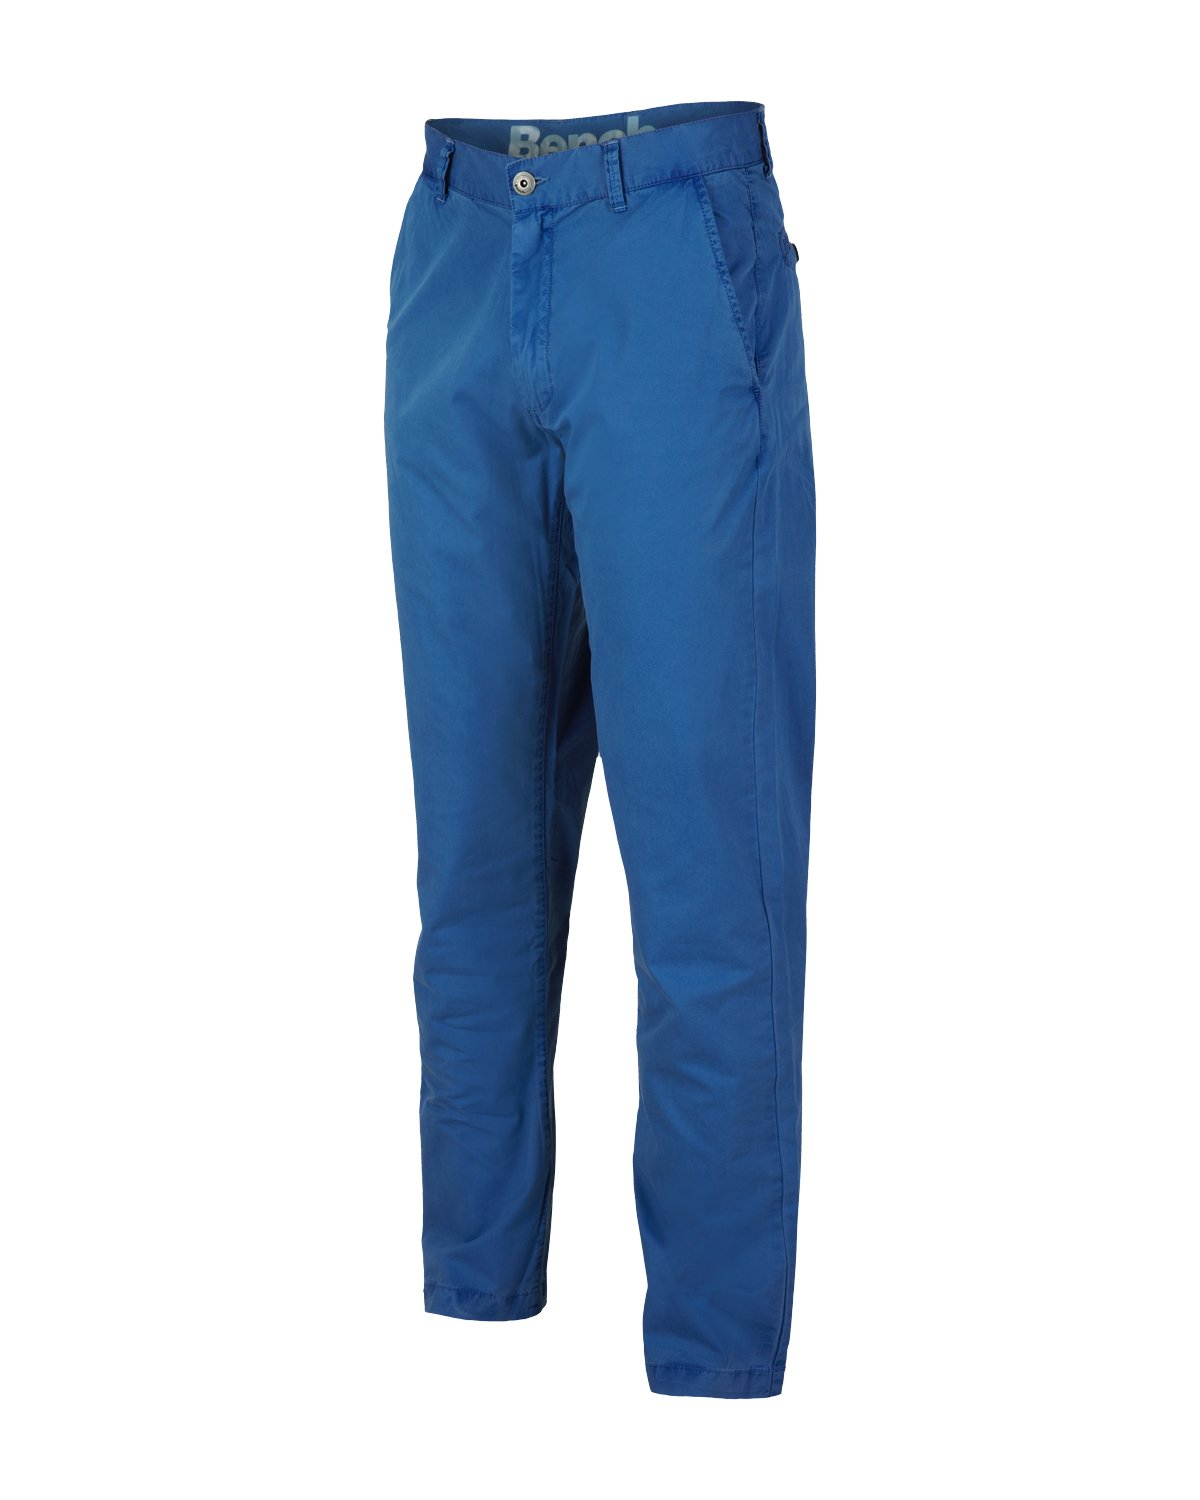 Bench Irving Men's Trousers - Blue